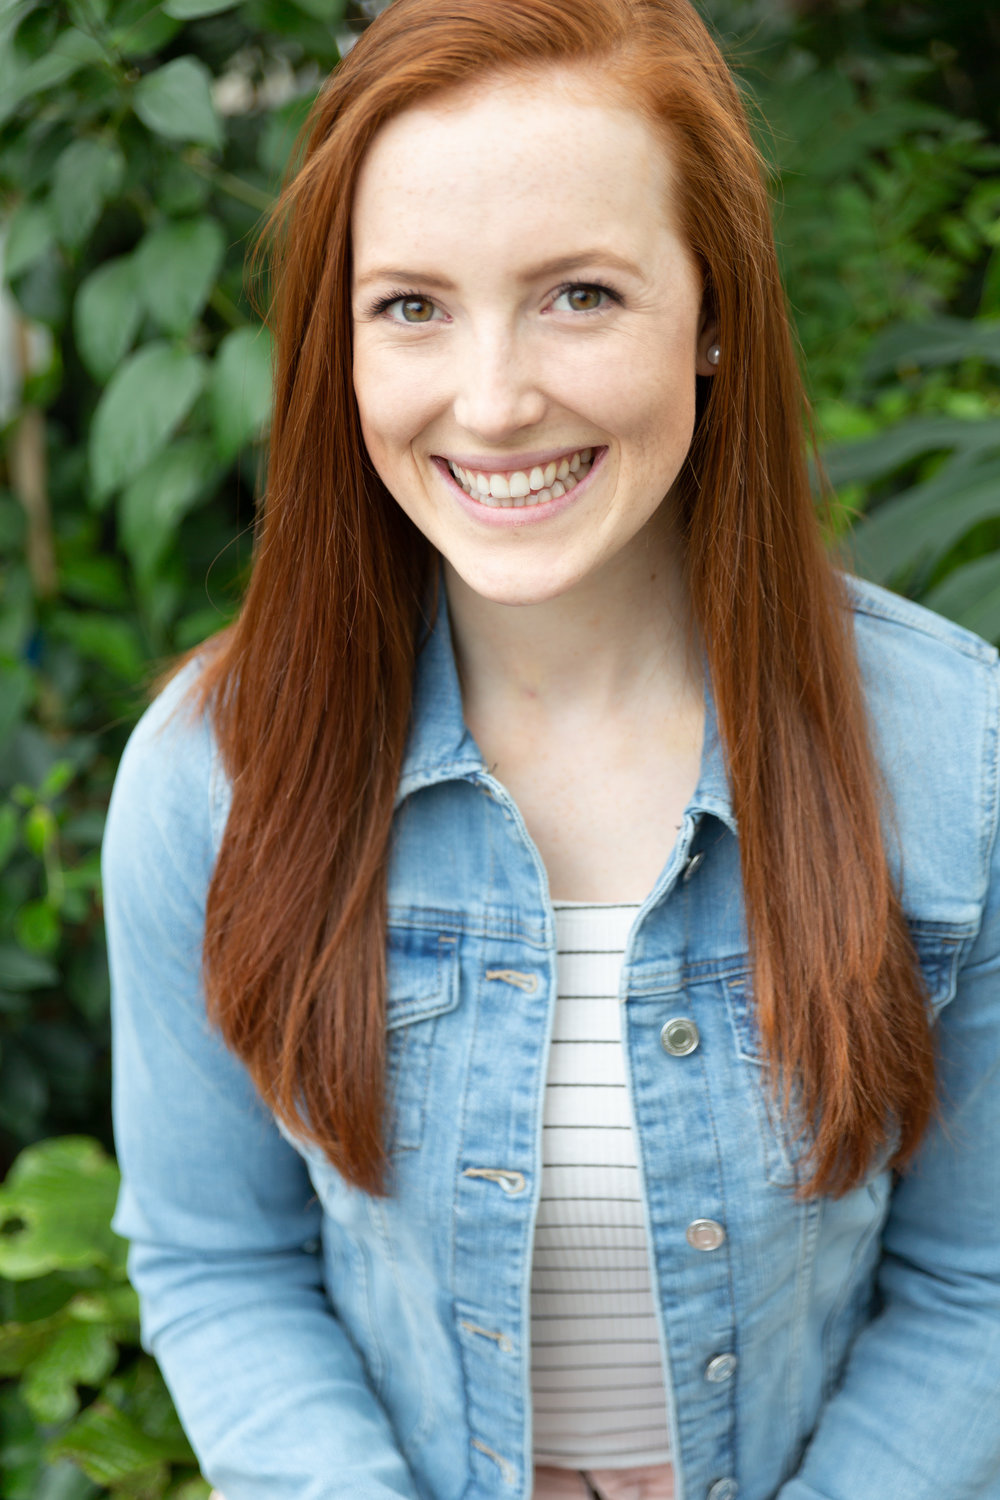 Lindsay Mustard - Lindsay is an Ottawa based Holistic Nutritionist, Personal Trainer and Yoga Instructor. She is currently studying Osteopathy at the Canadian Academy of Osteopathy in addition to Aromatherapy in Guelph, Ontario. Her passion for healthy living burns brighter than her red hair and she illuminates the path to achieving holistic health and wellness for everyone that she meets. Website, Instagram